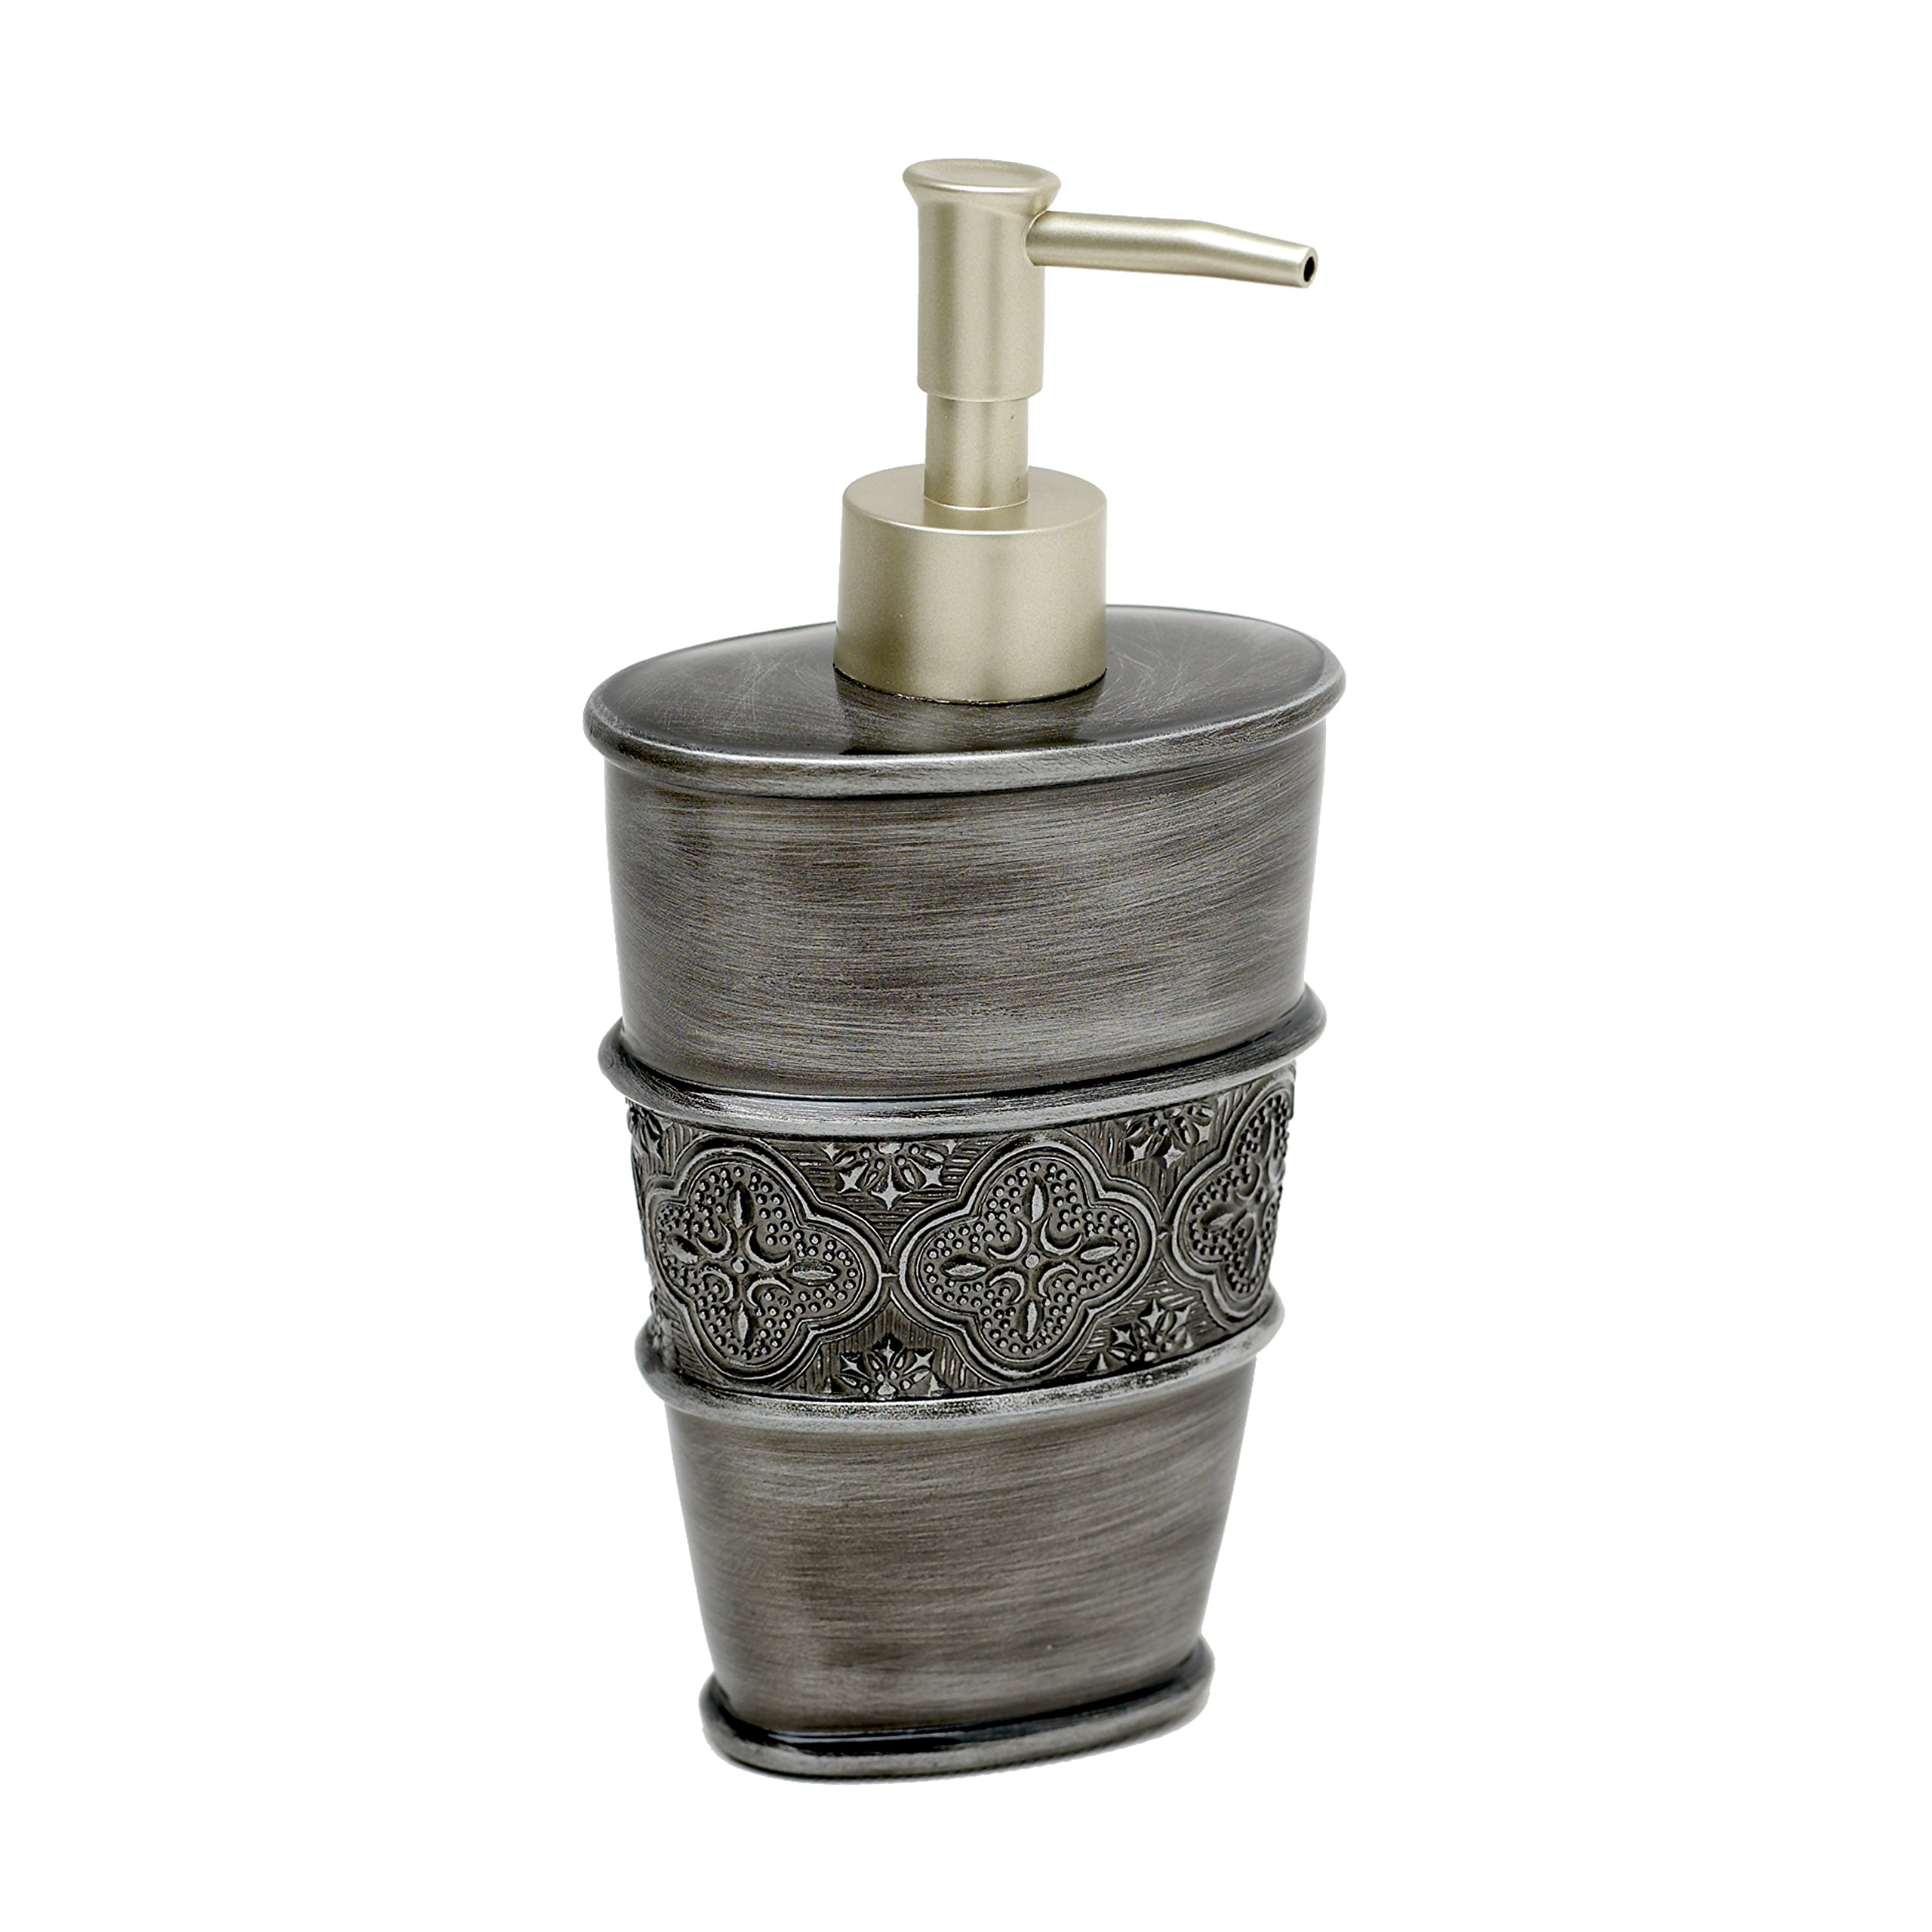 India Ink 7059537551, Gatsby Lotion Dispenser, Antique Pewter by ZPC Zenith Products Corporation (Image #1)